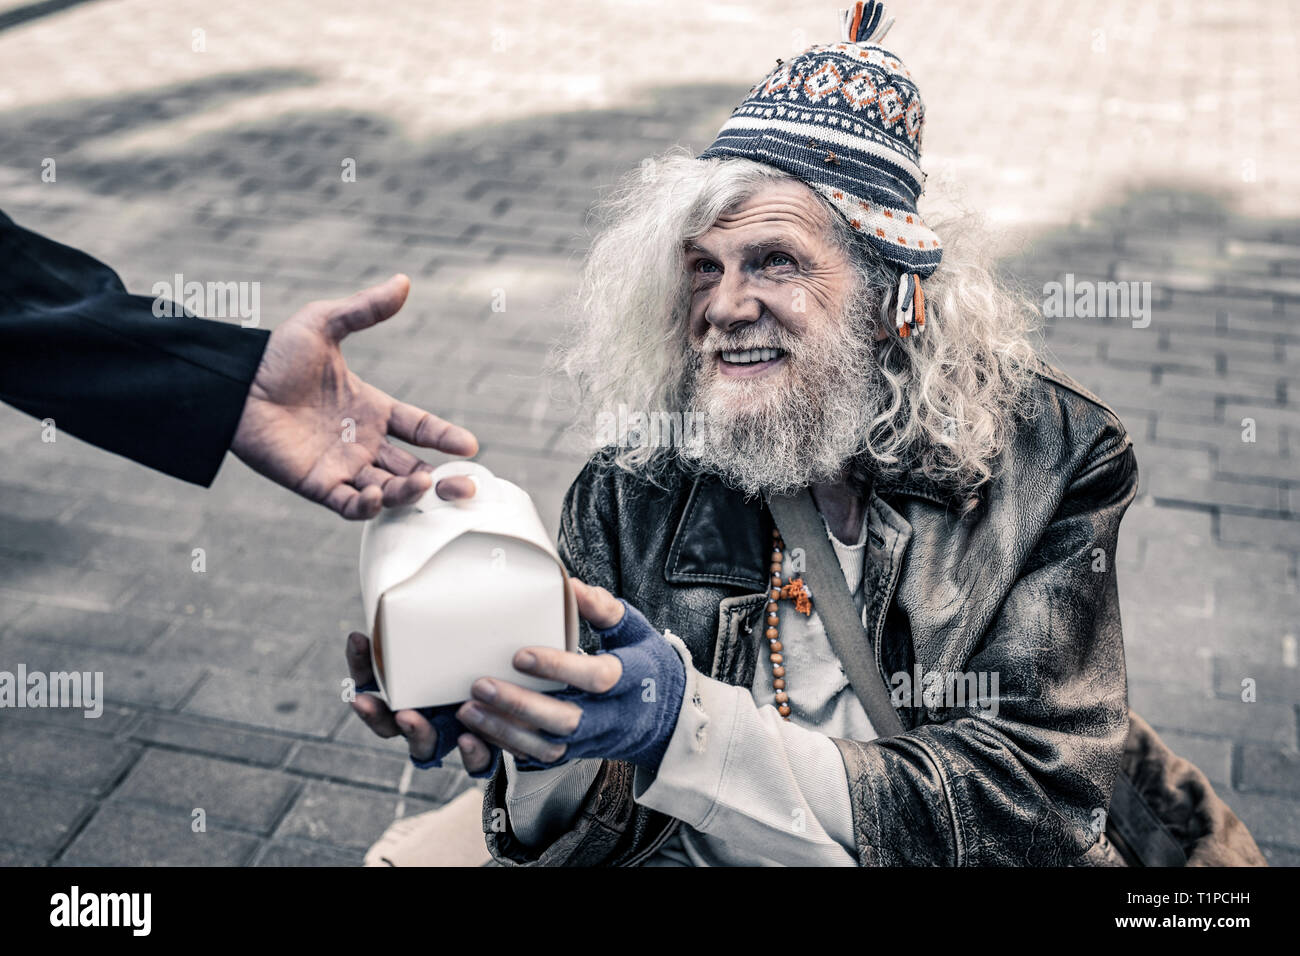 Dirty grey-haired senior homeless wearing ragged clothes and receiving food - Stock Image